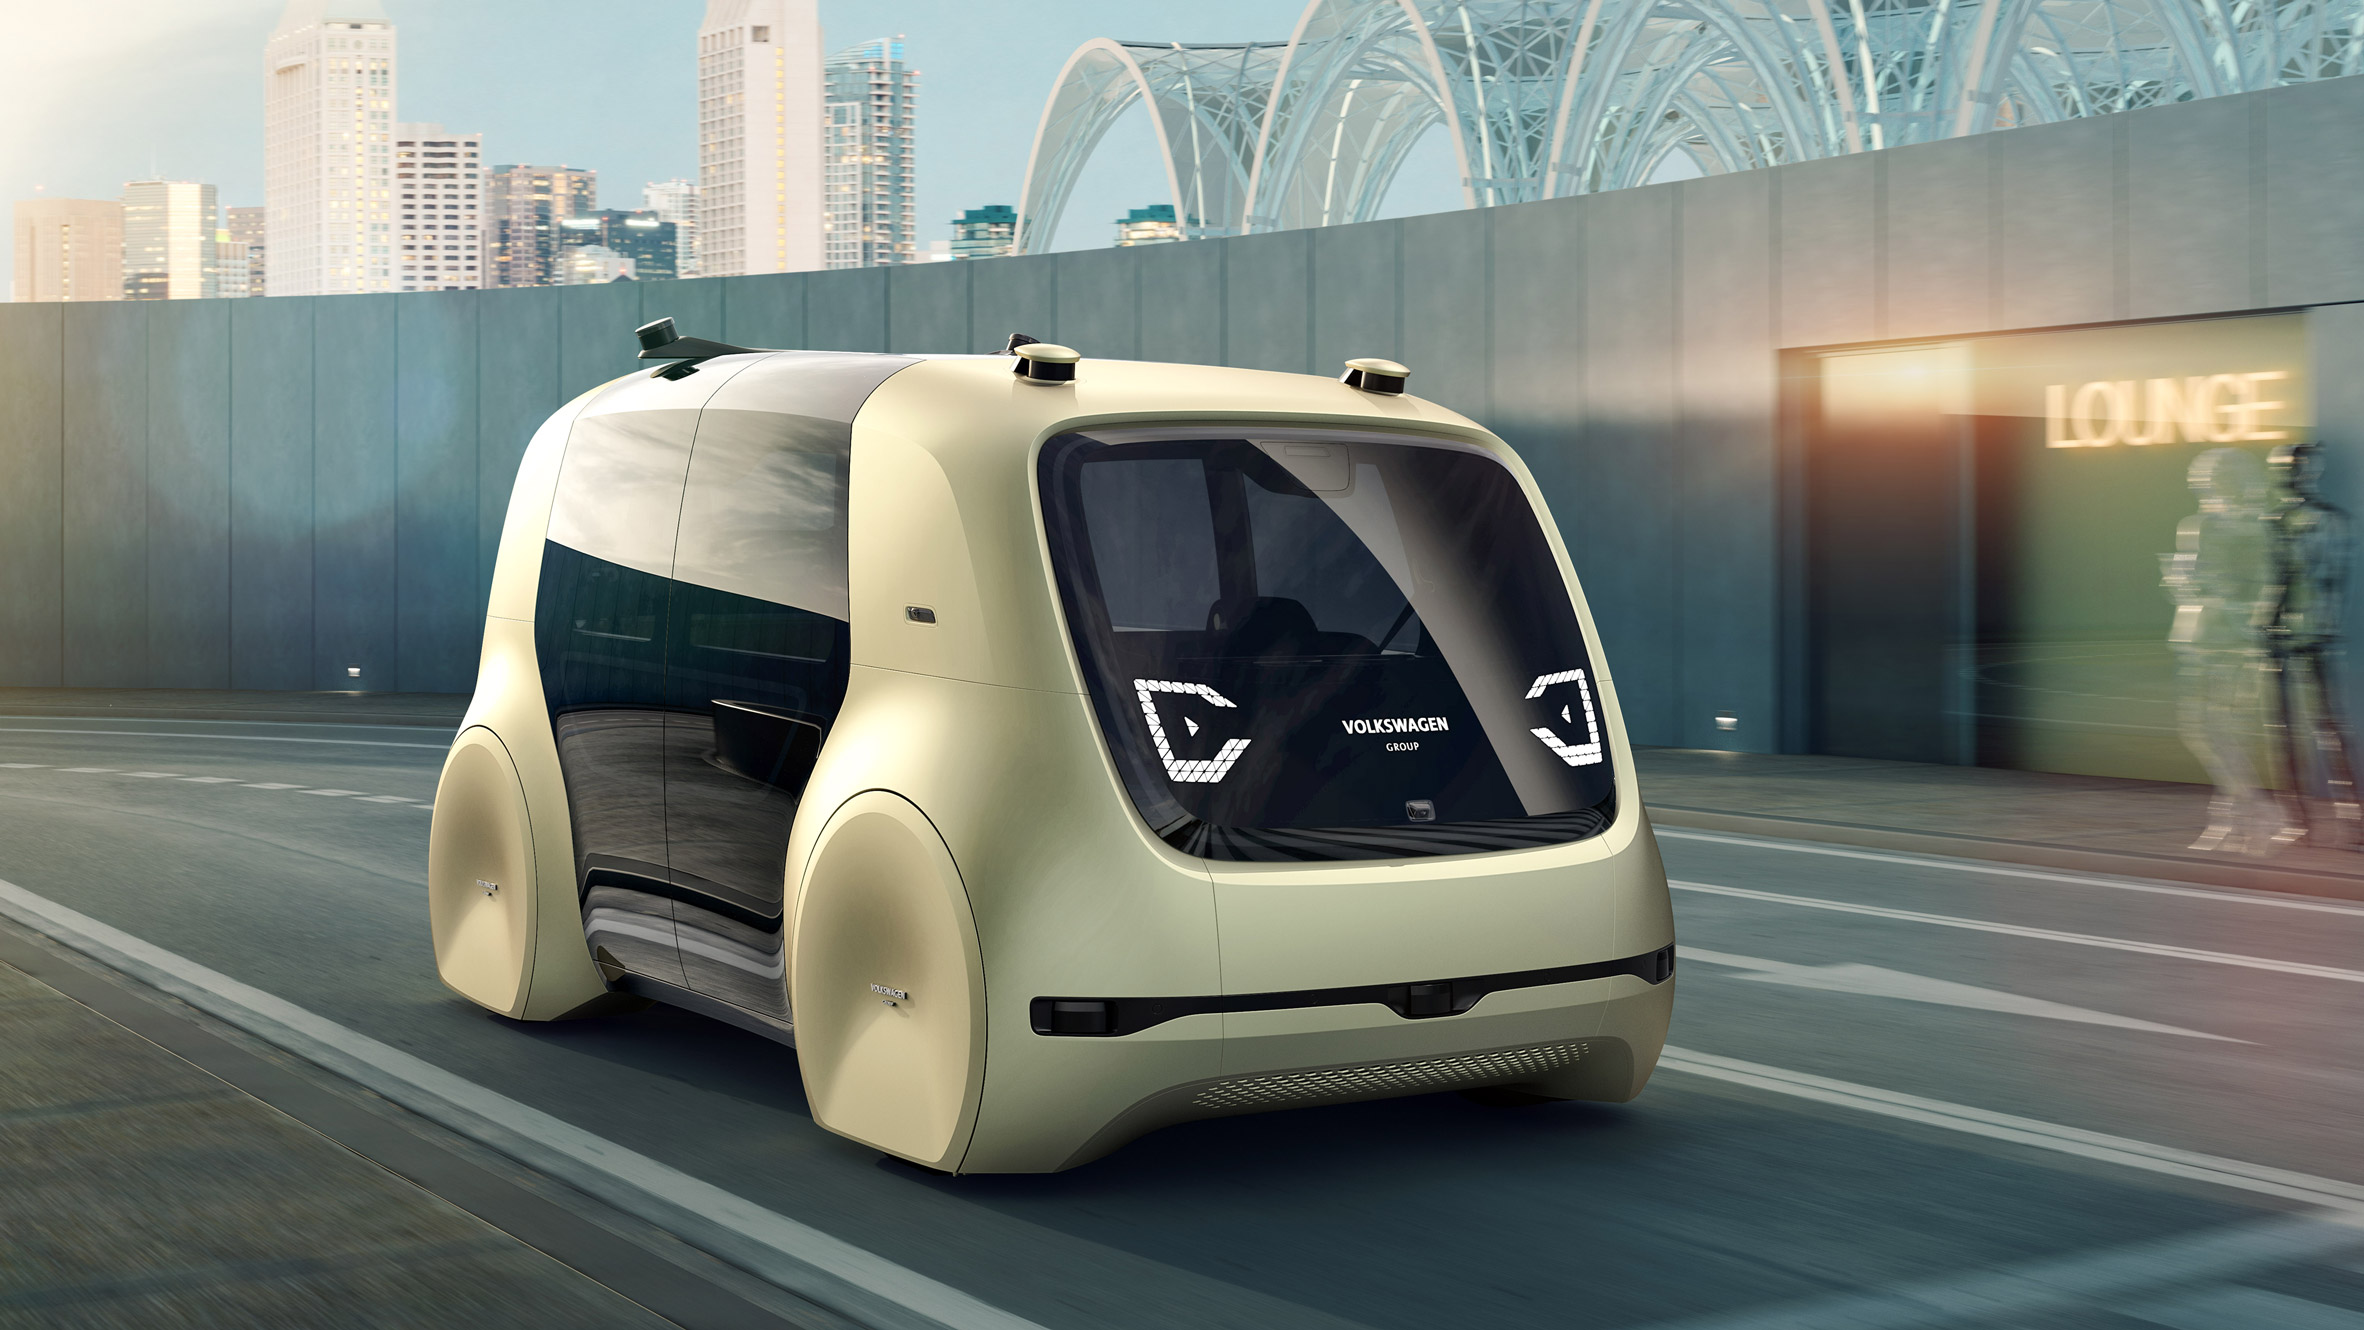 https://static.dezeen.com/uploads/2017/03/volkswagen-sedric-concept-car-transport-design-driverless-vehicles_dezeen_hero.jpg